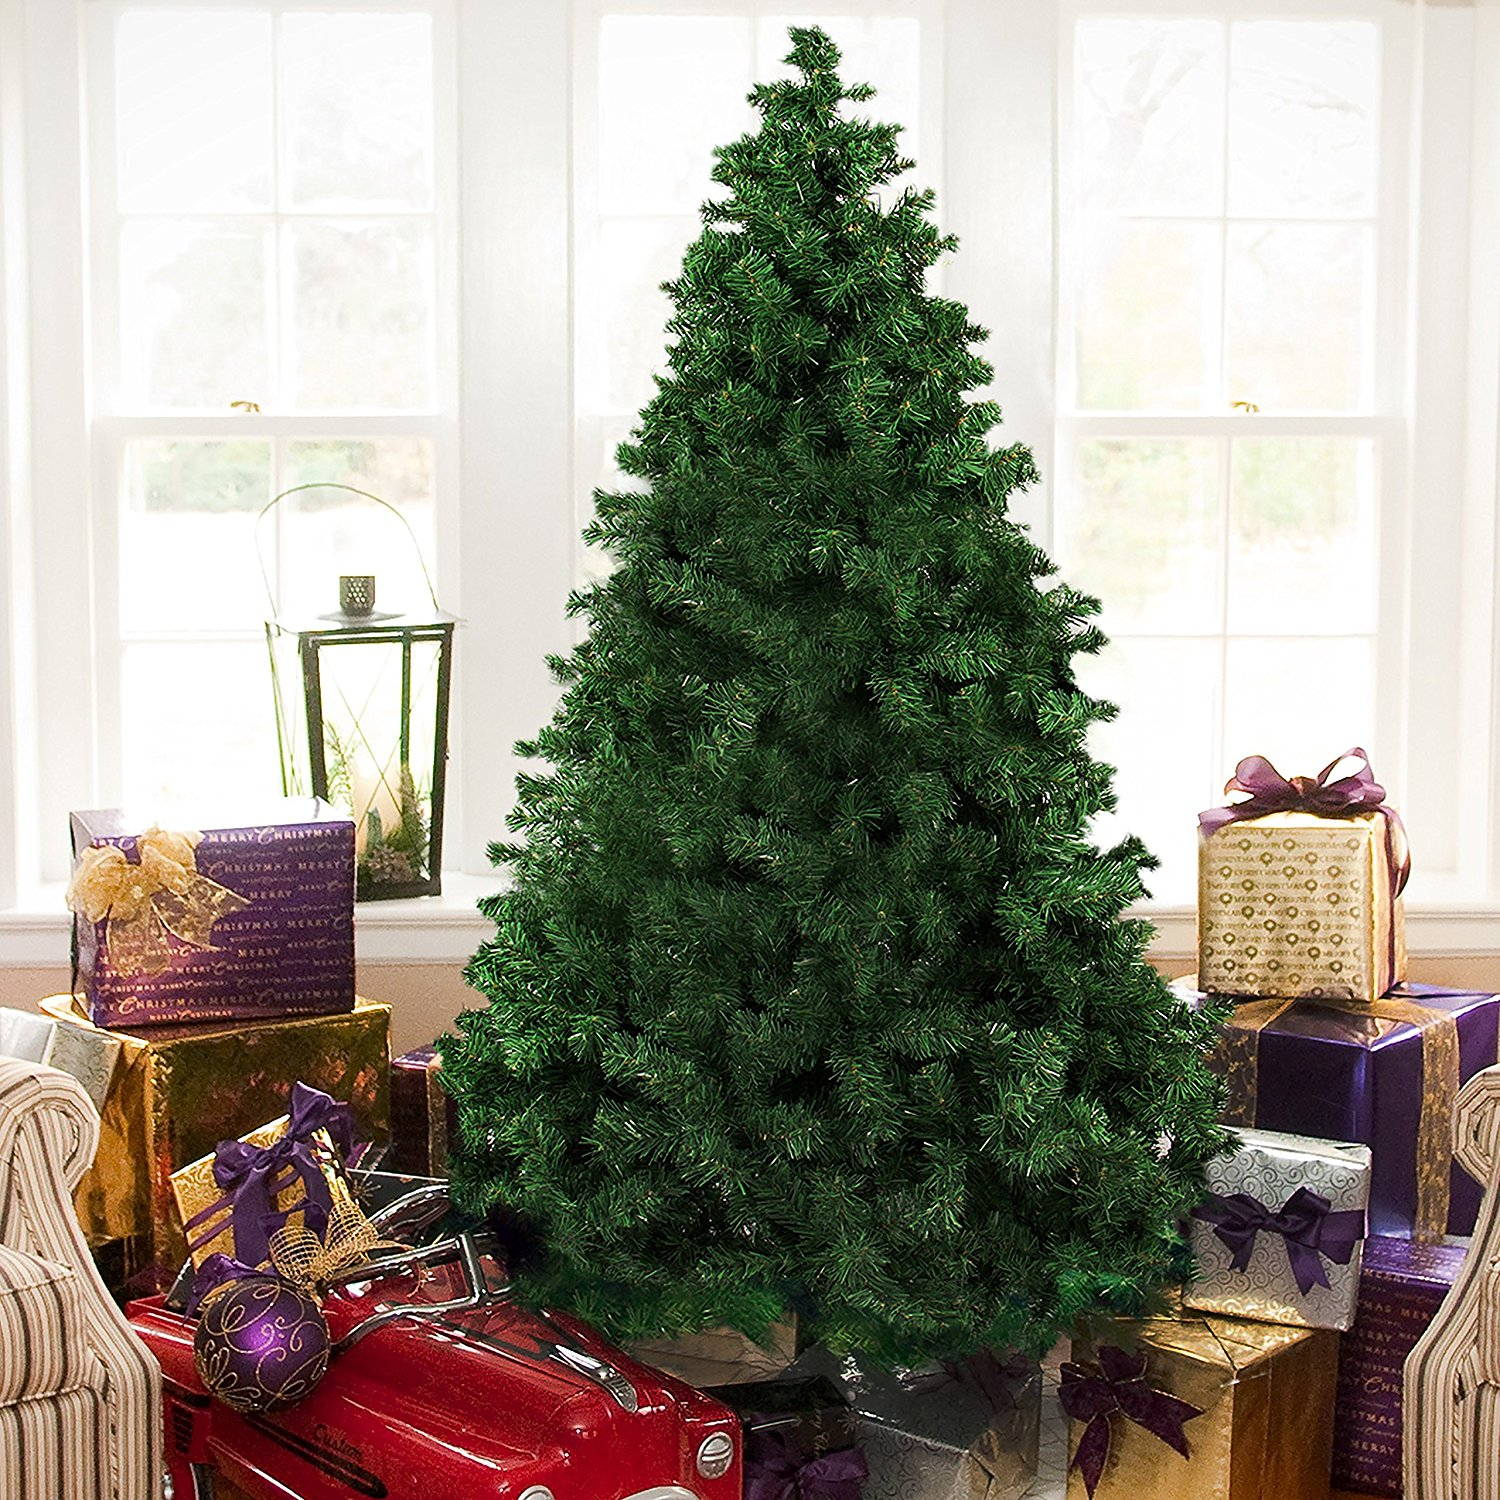 Best Deal On Artificial Christmas Trees: Top 10 Best & Realistic Artificial Christmas Trees For